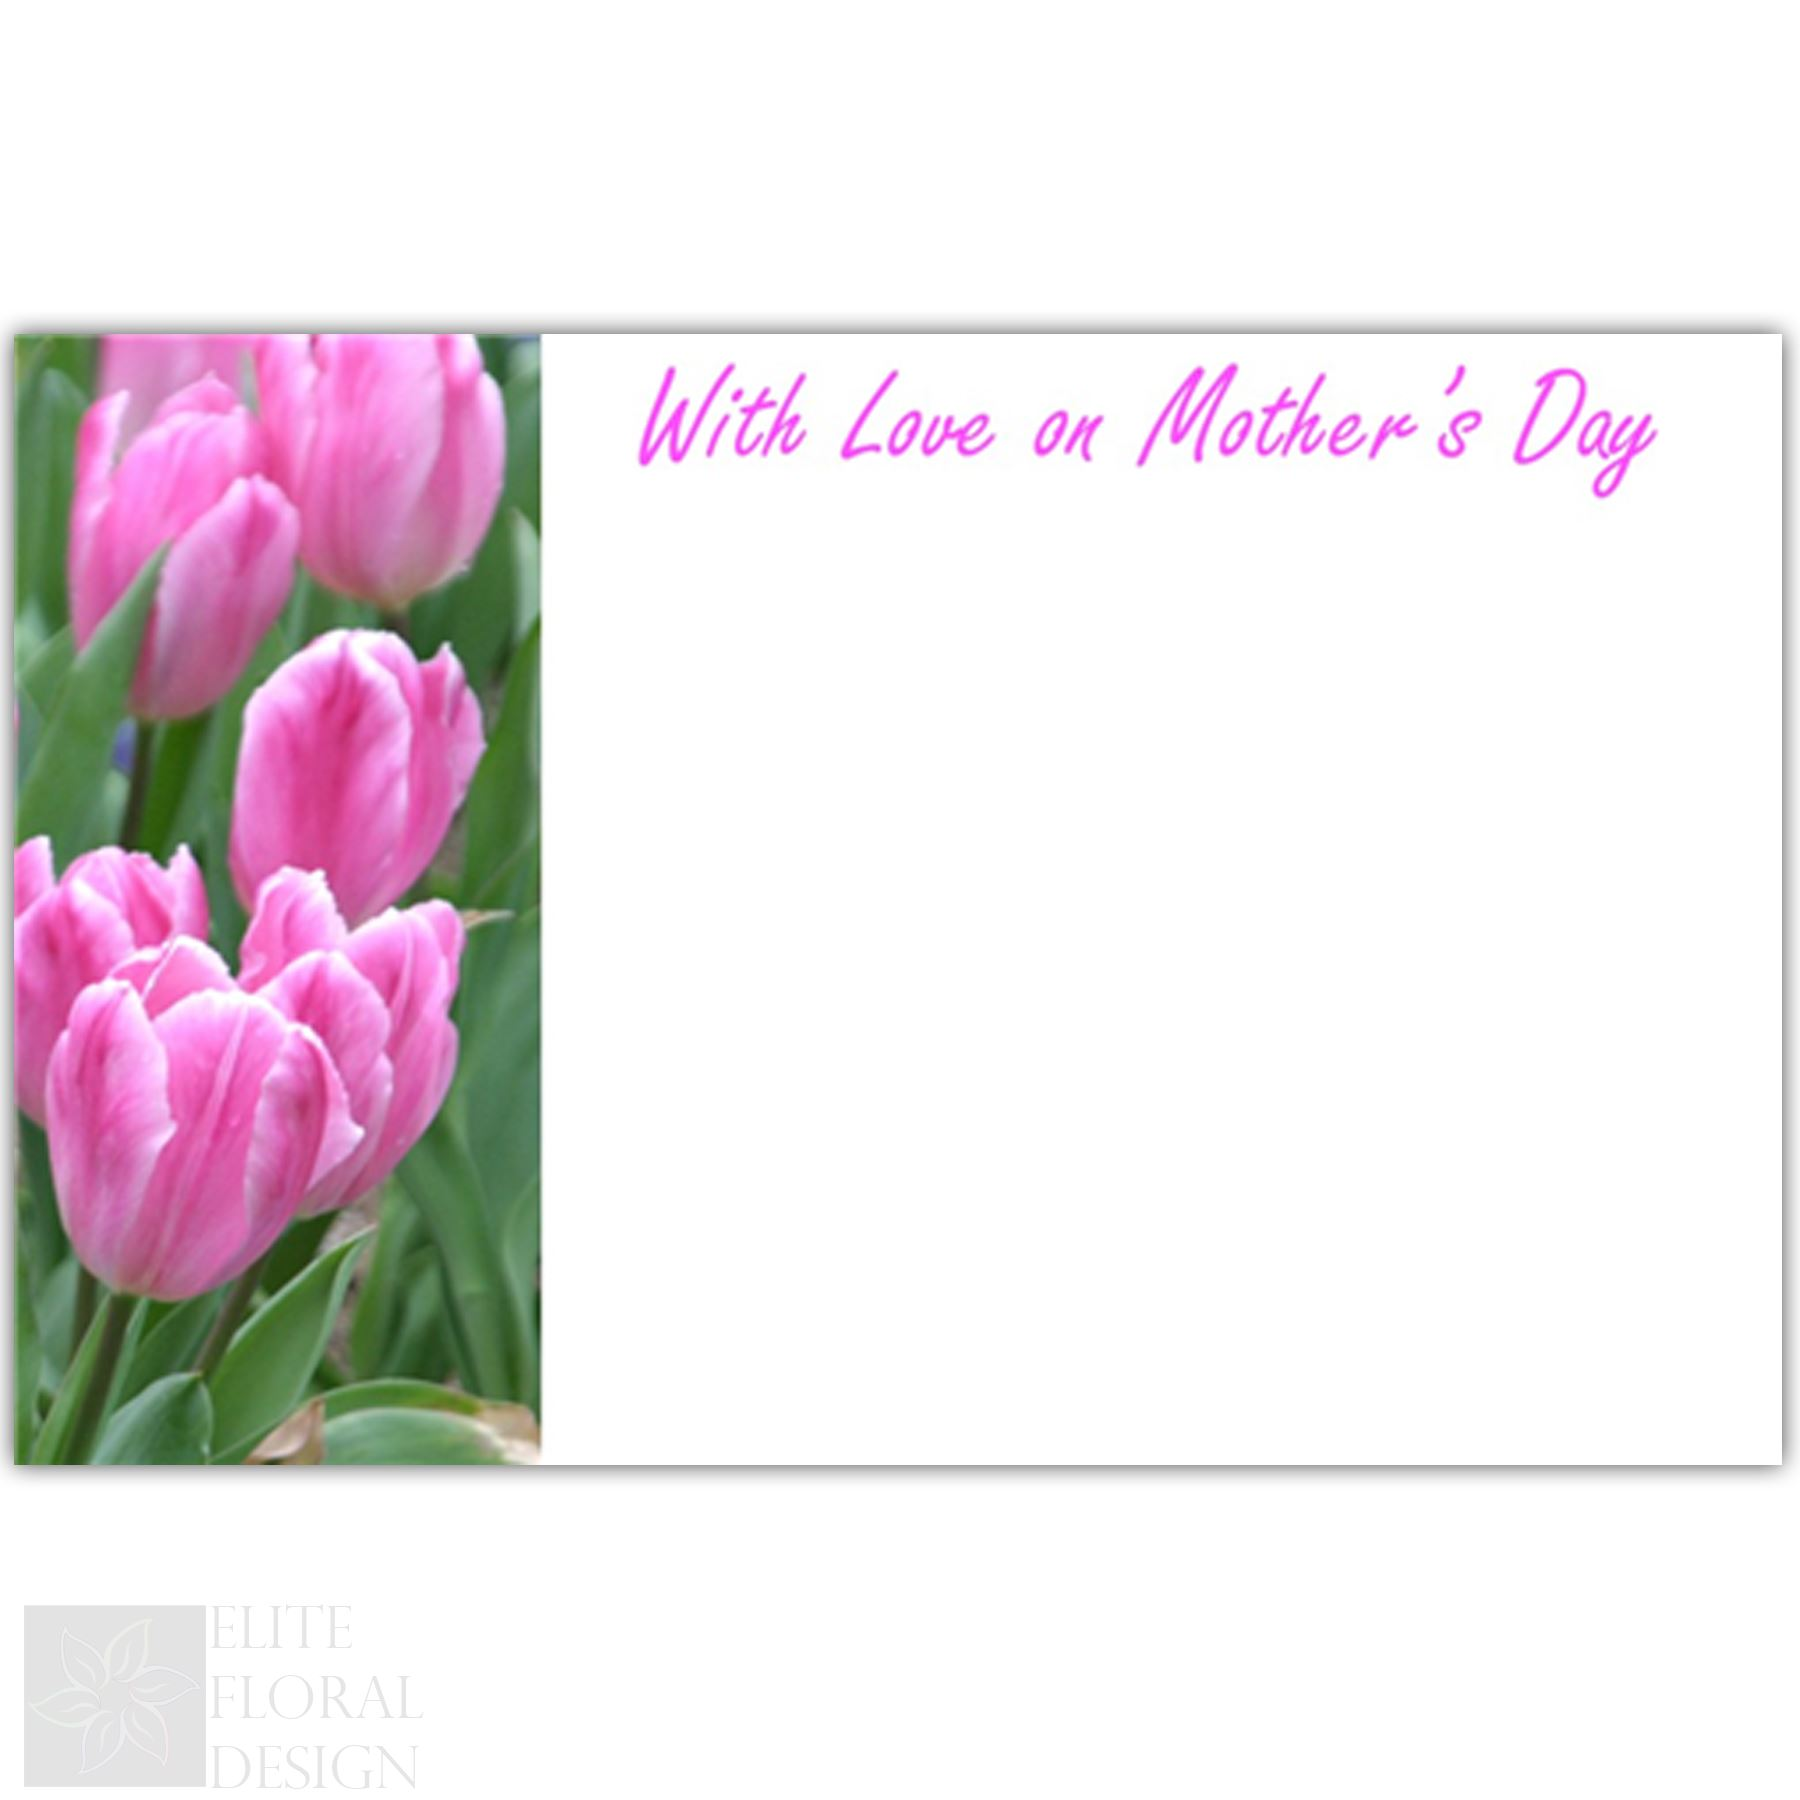 Florist flower message cards birthday annivesary funeral mothers florist flower message cards birthday annivesary funeral mothers kristyandbryce Images